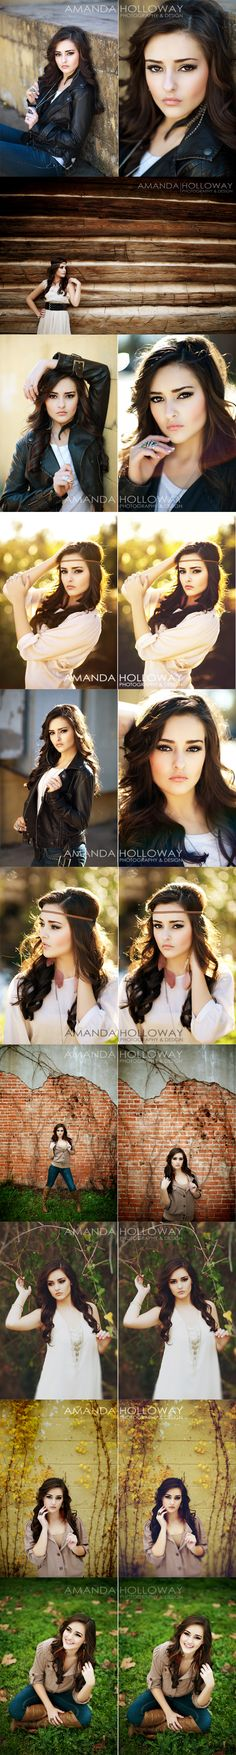 Senior photo ideas AMANDA HOLLOWAY PHOTOGRAPHY | THE WOODLANDS, TX